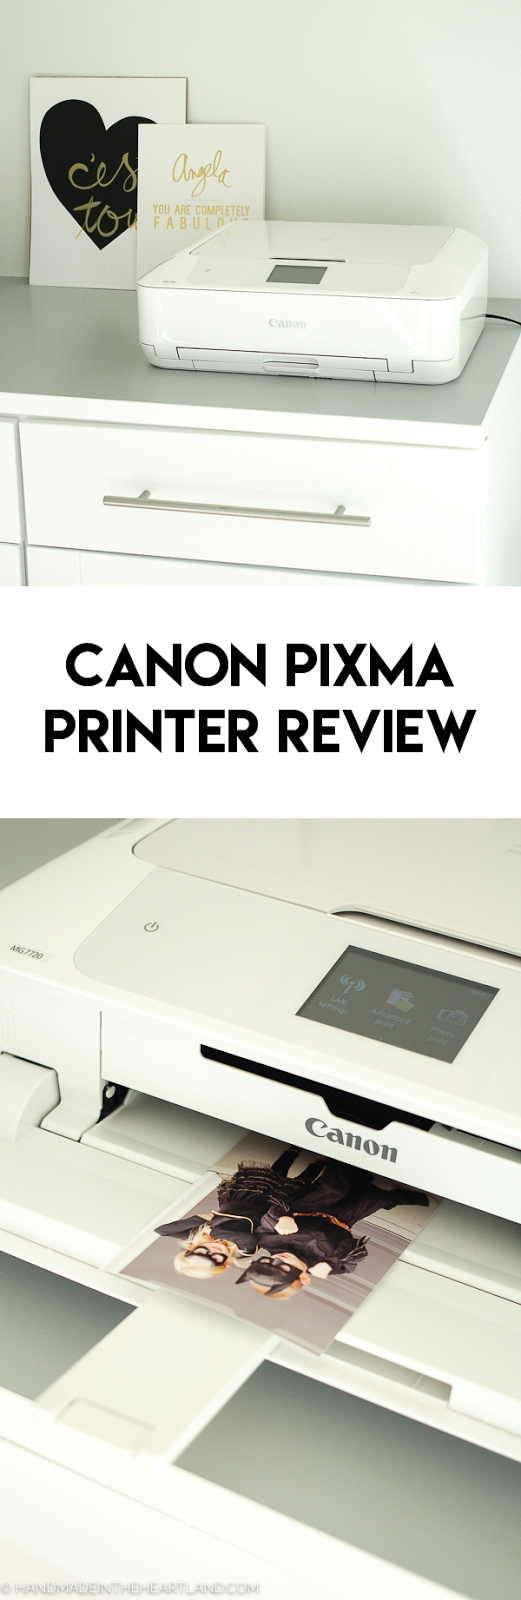 The Canon Pixma 7720 is a great home printer for photo and color prints